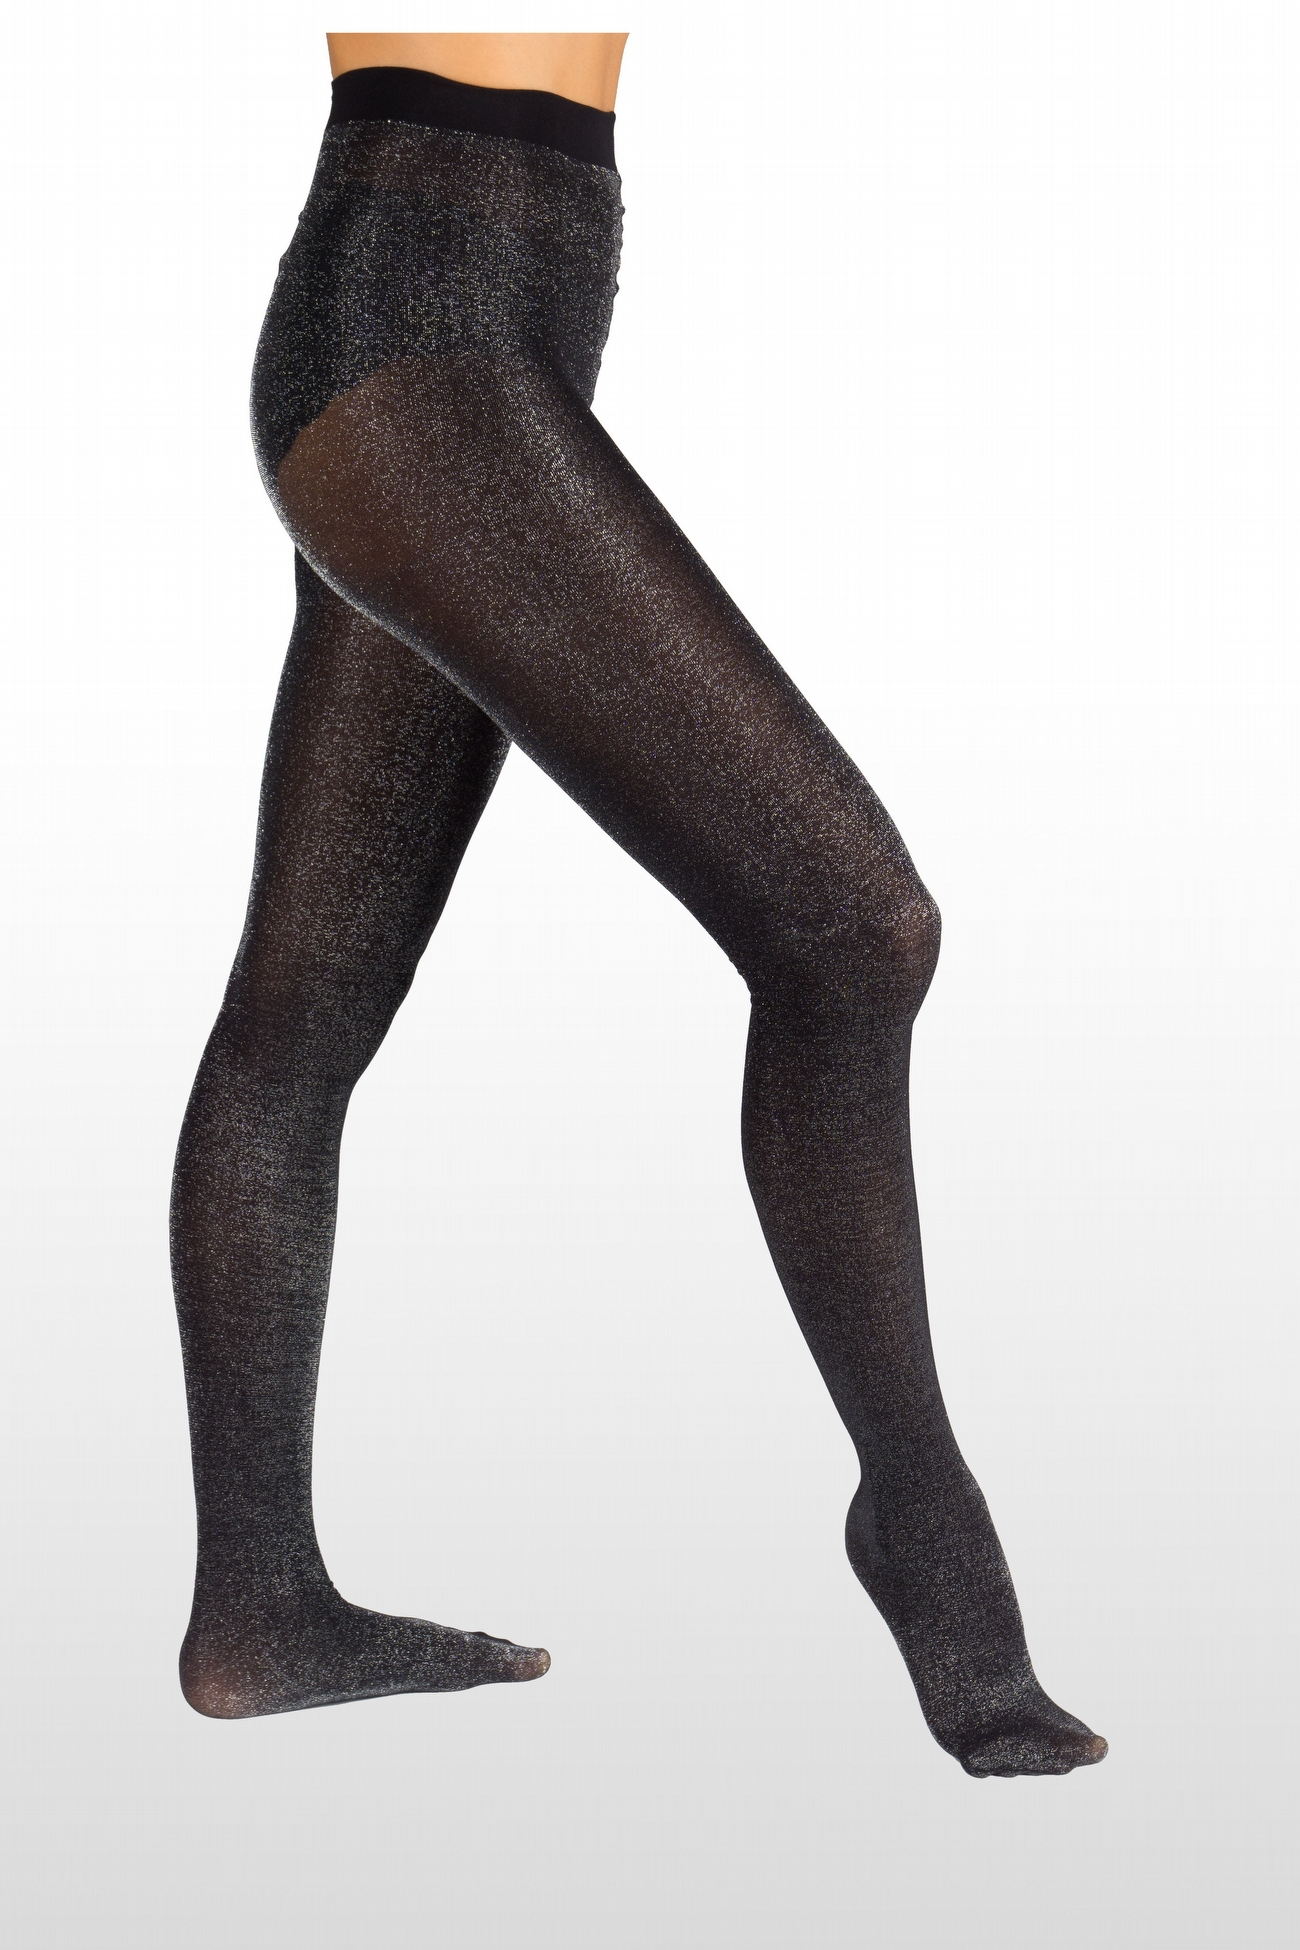 compra online Skating FOOTED TIGHTS WITH LUREX 40 DEN